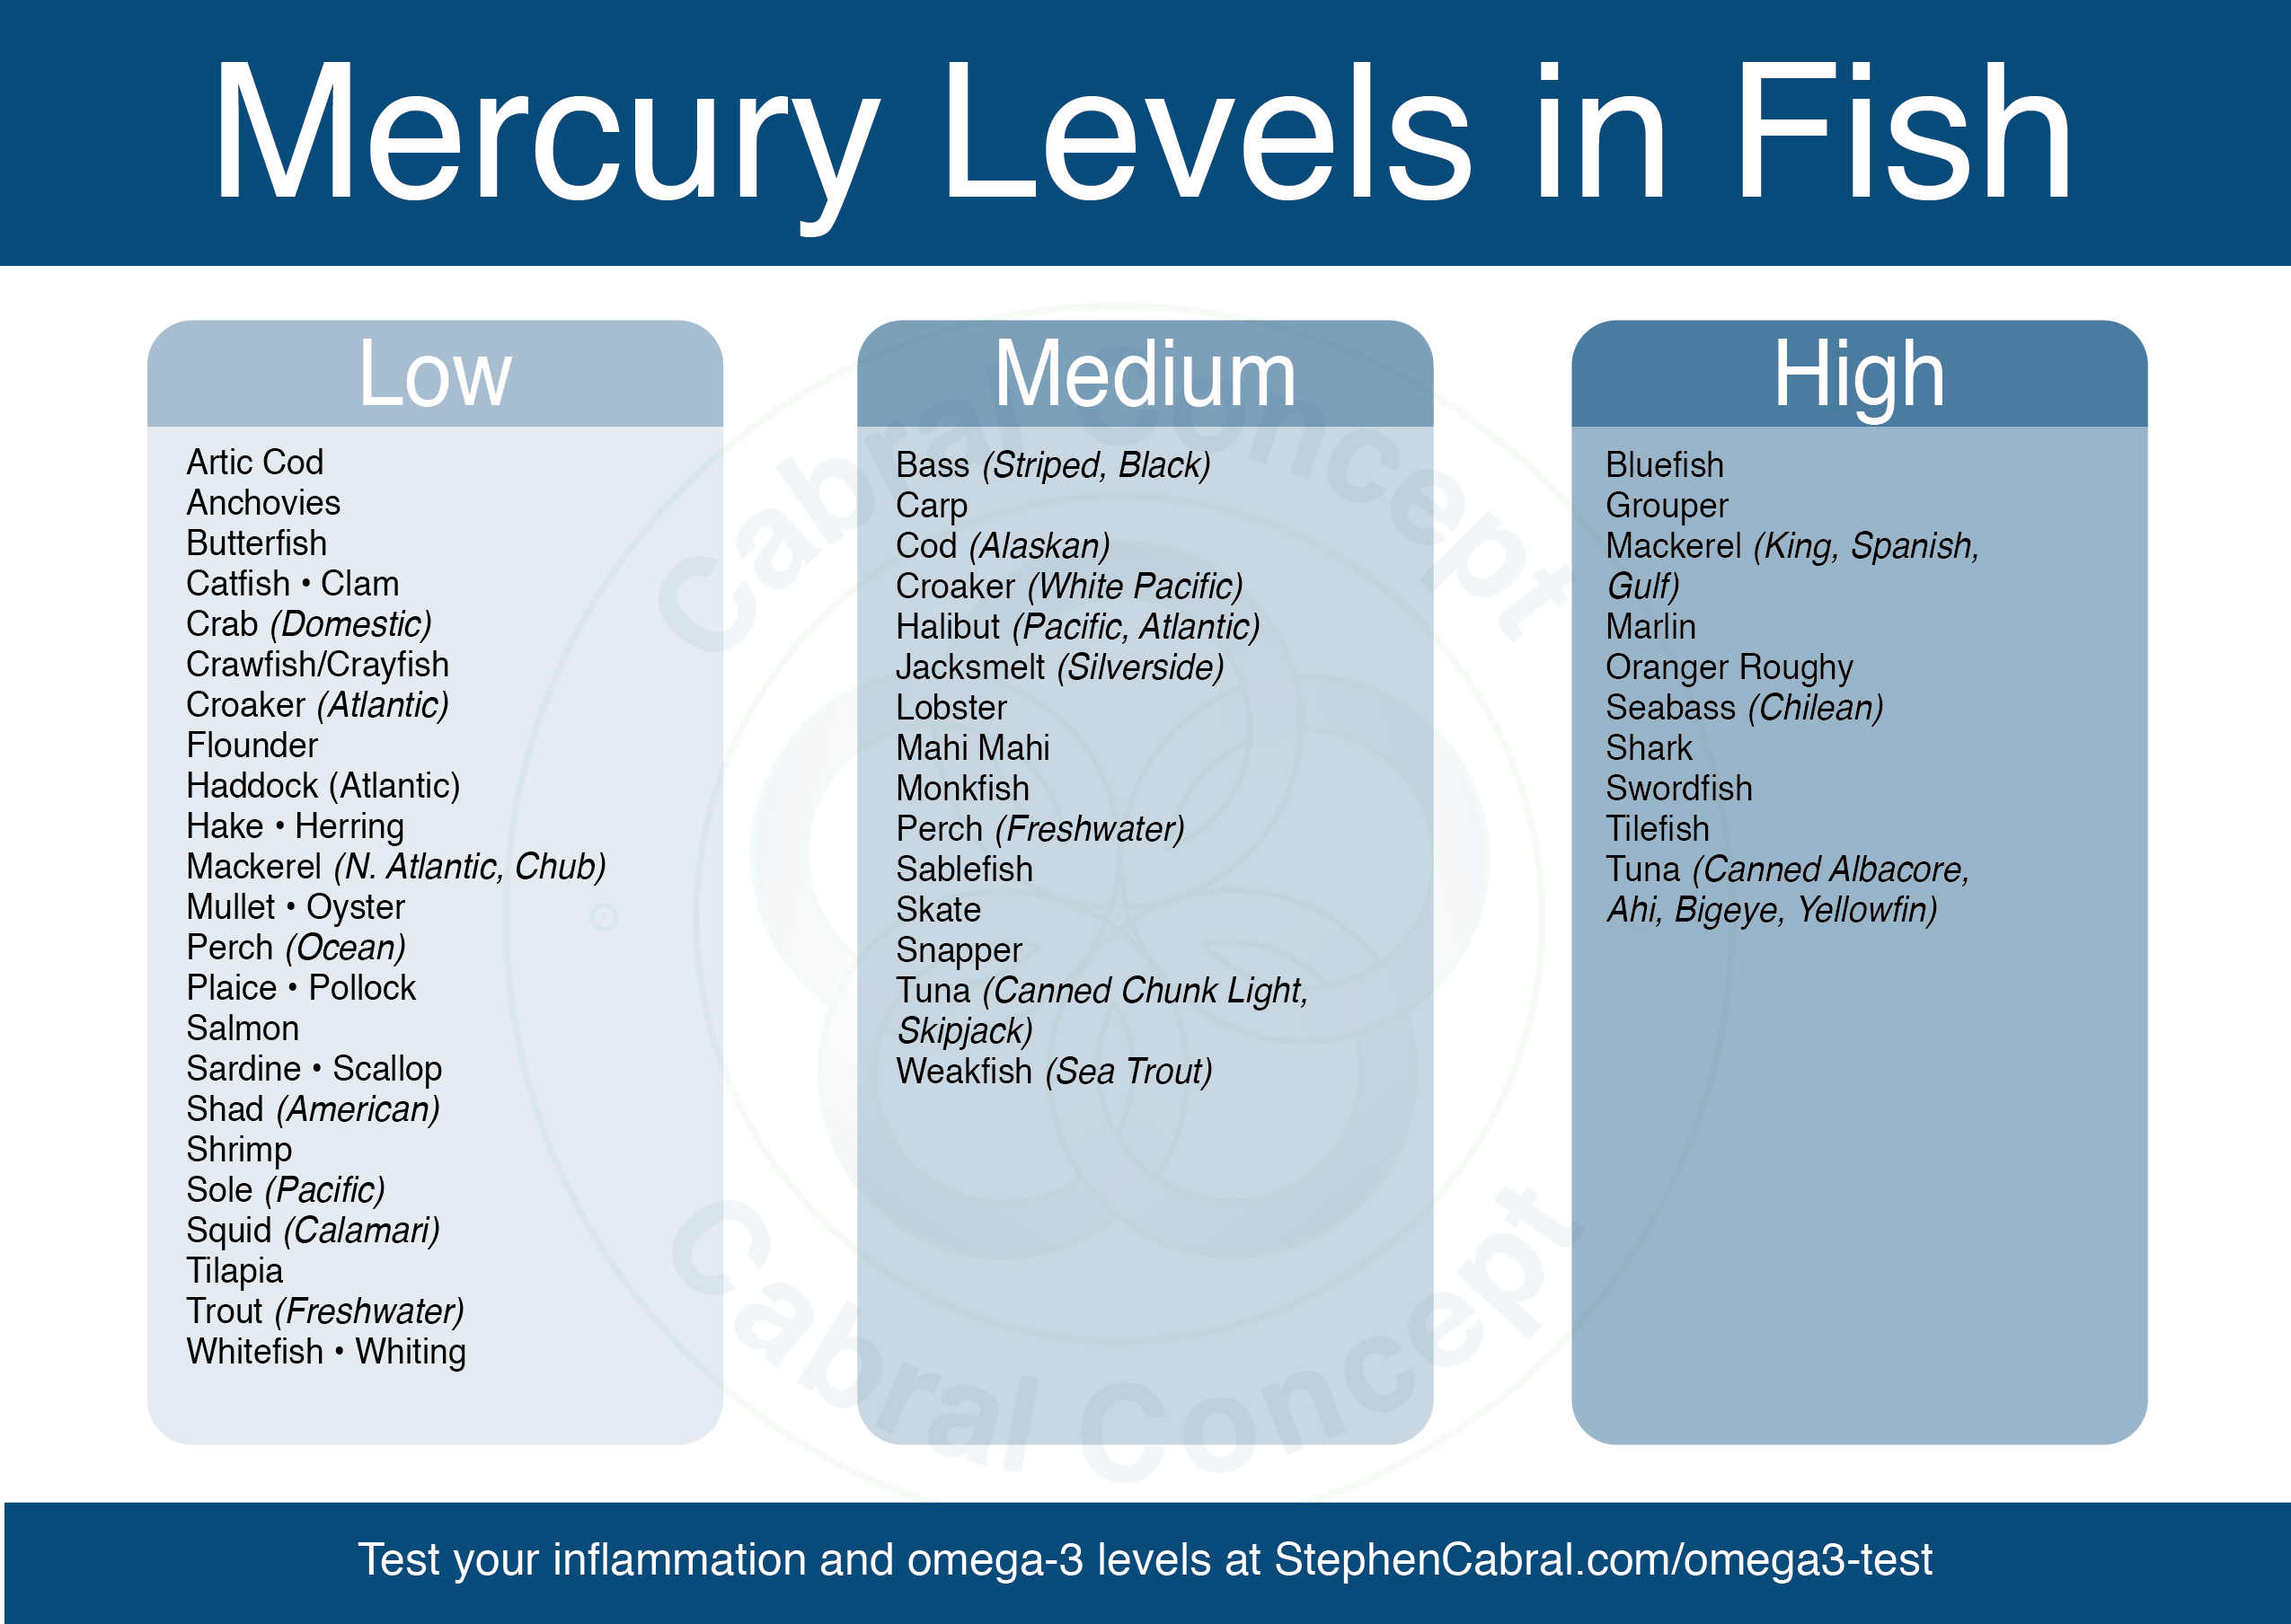 Freshwater fish mercury - Download The Png Here